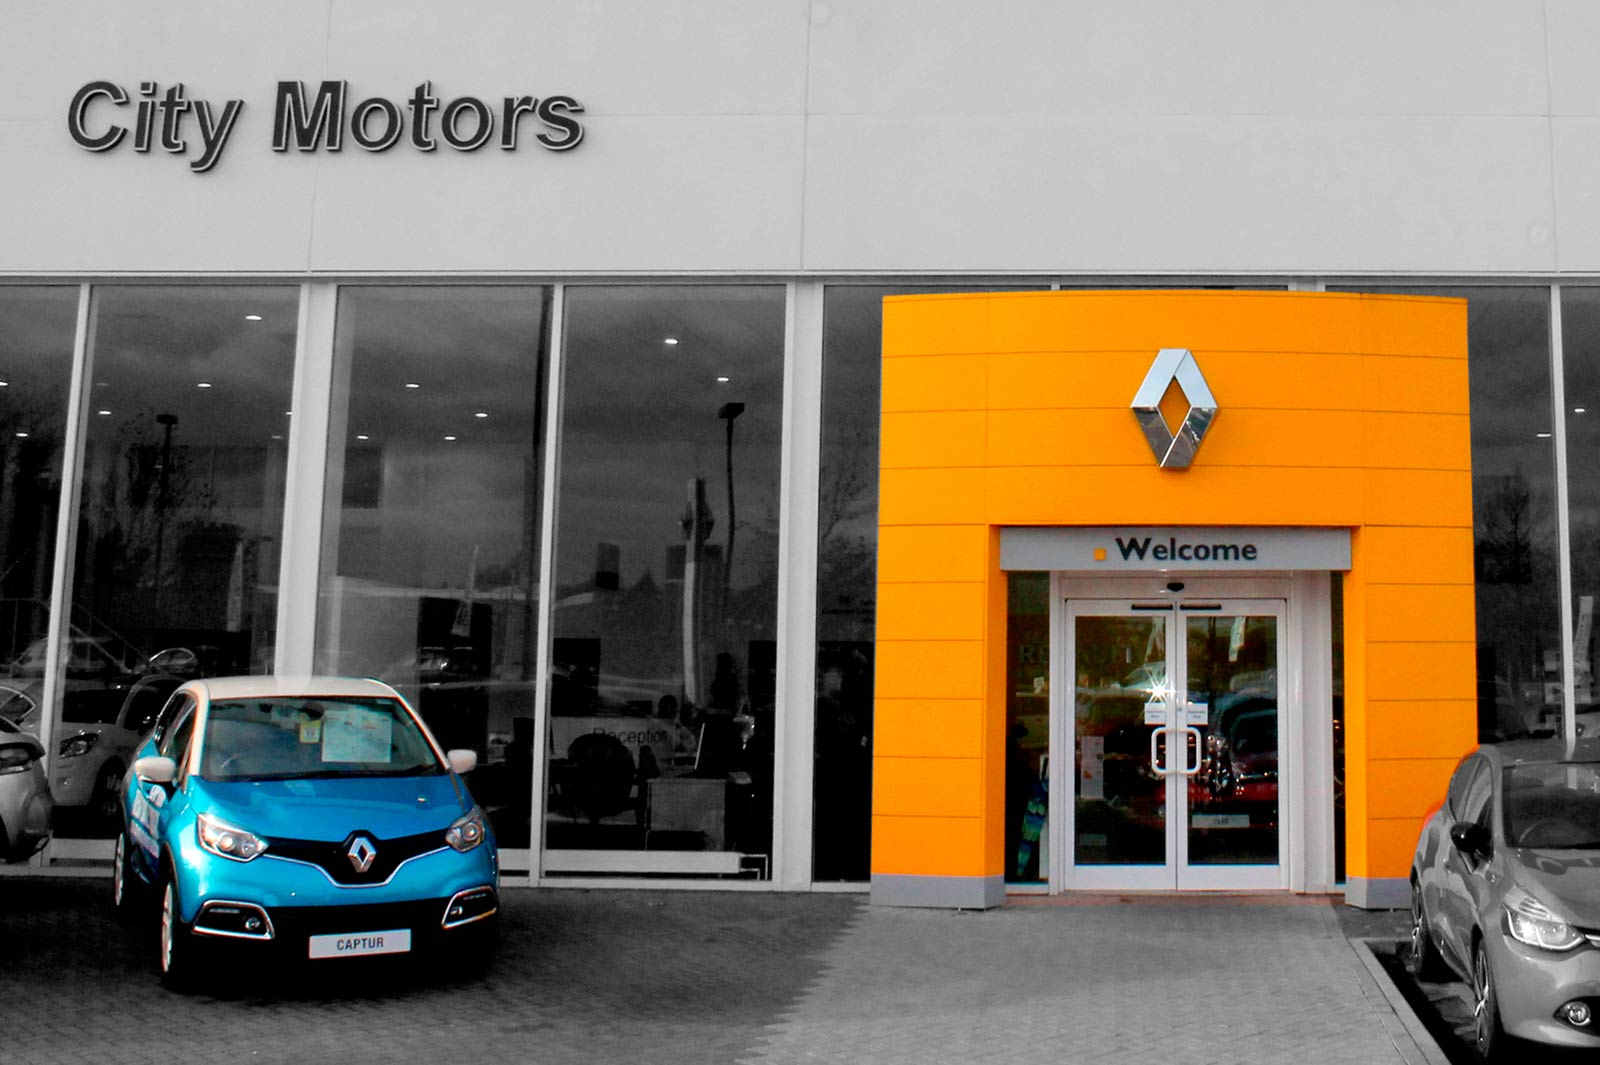 City motors bristol bristol car dealer reviews autocars blog Motor city car sales